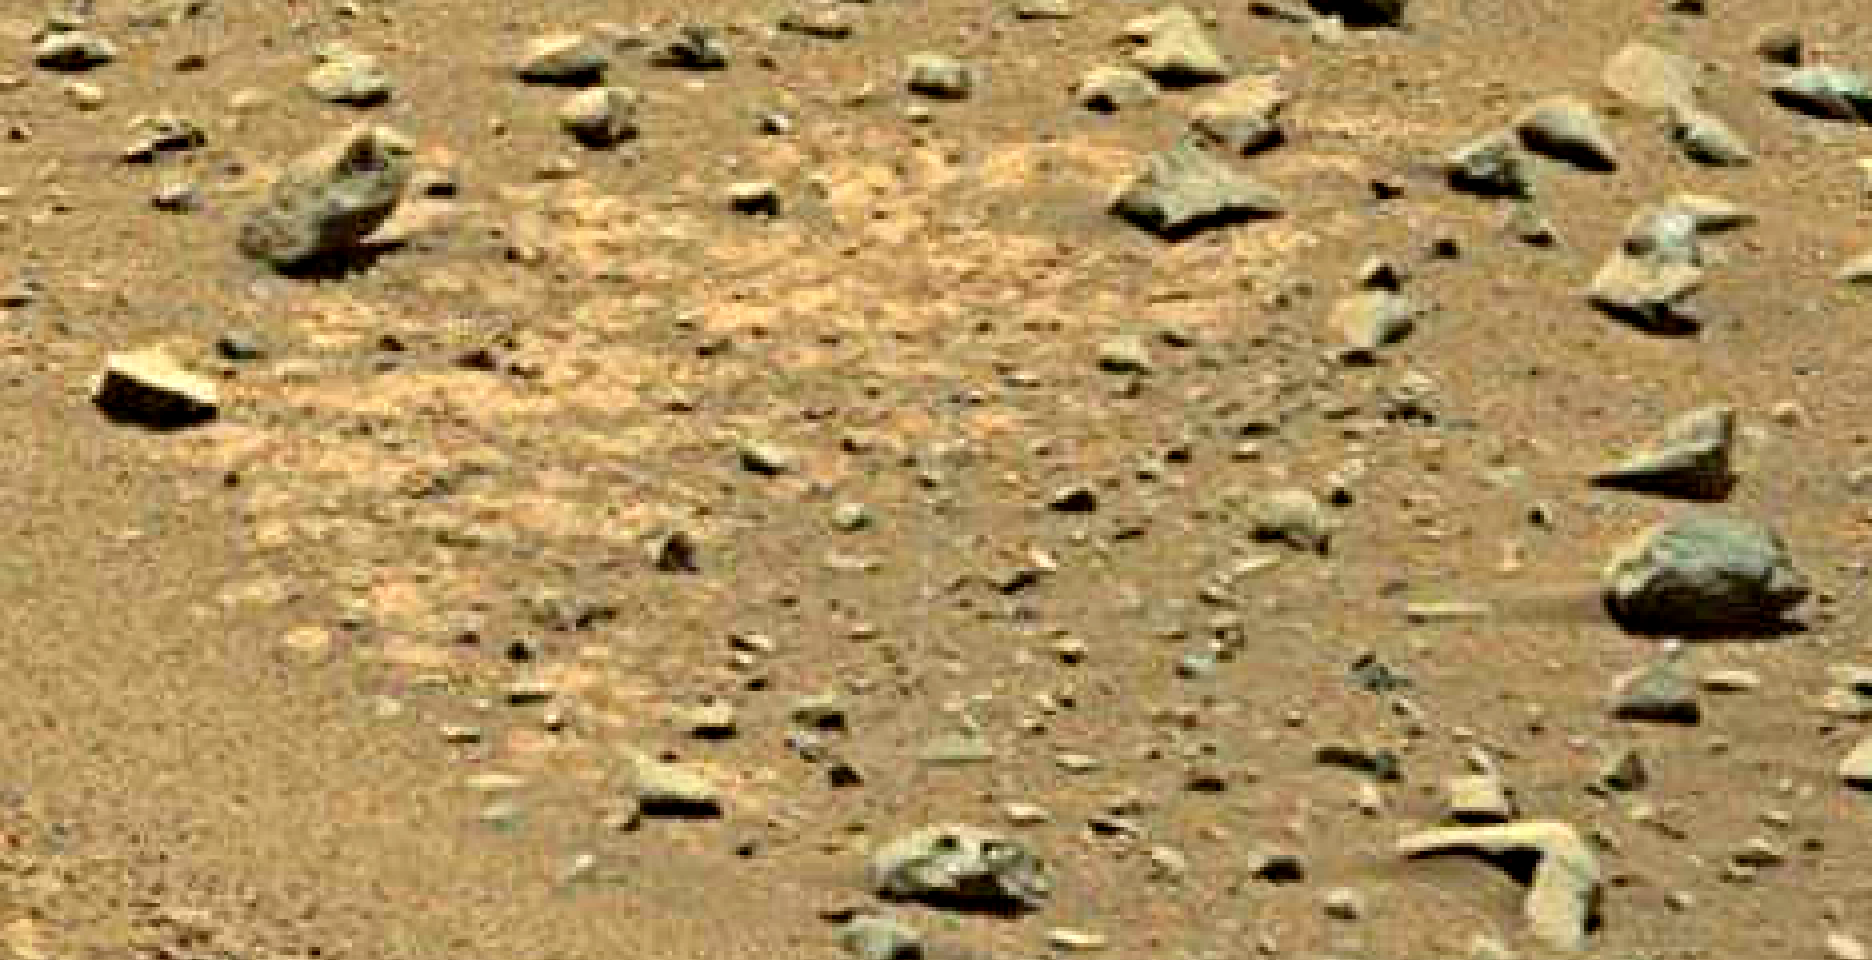 mars sol 1399 anomaly artifacts 7 was life on mars